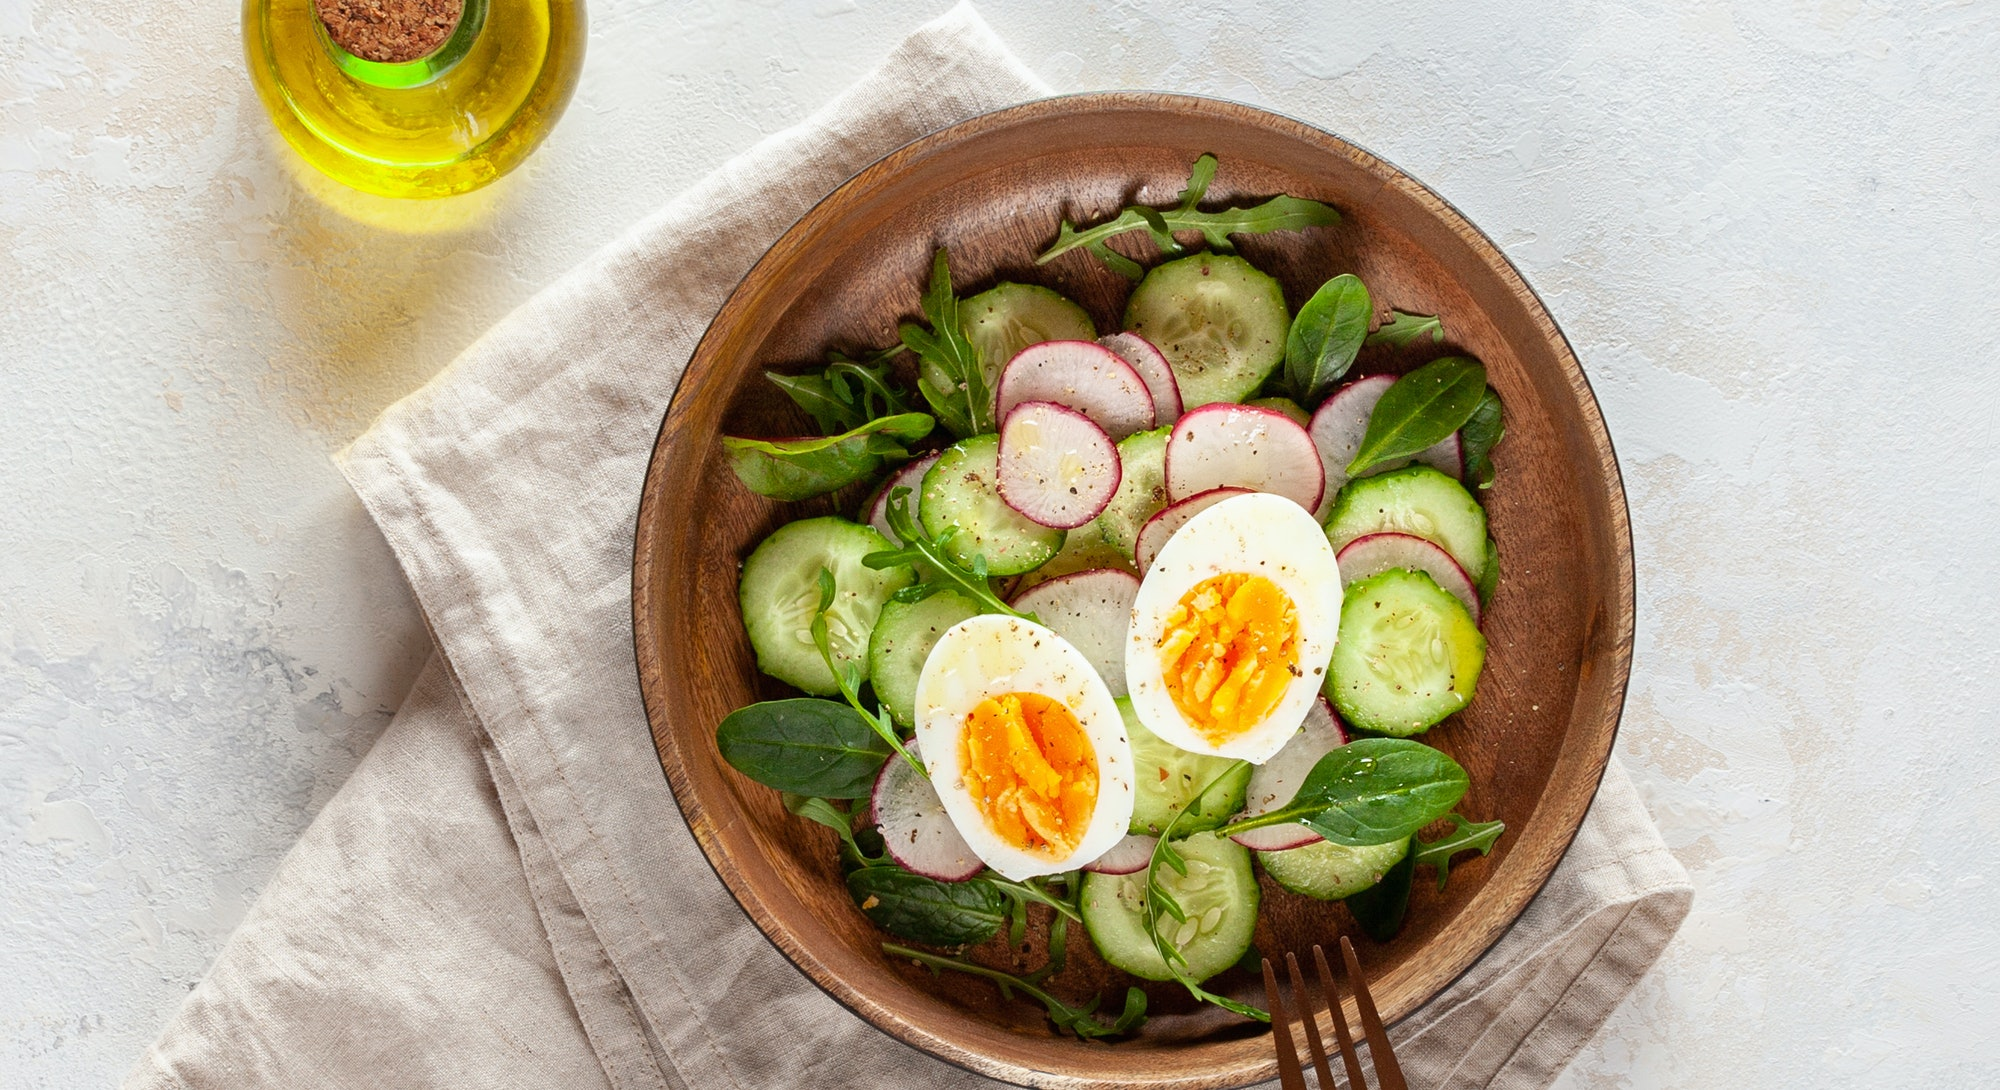 salad of radish, cucumber, arugula and boiled egg with olive oil in a wooden bowl